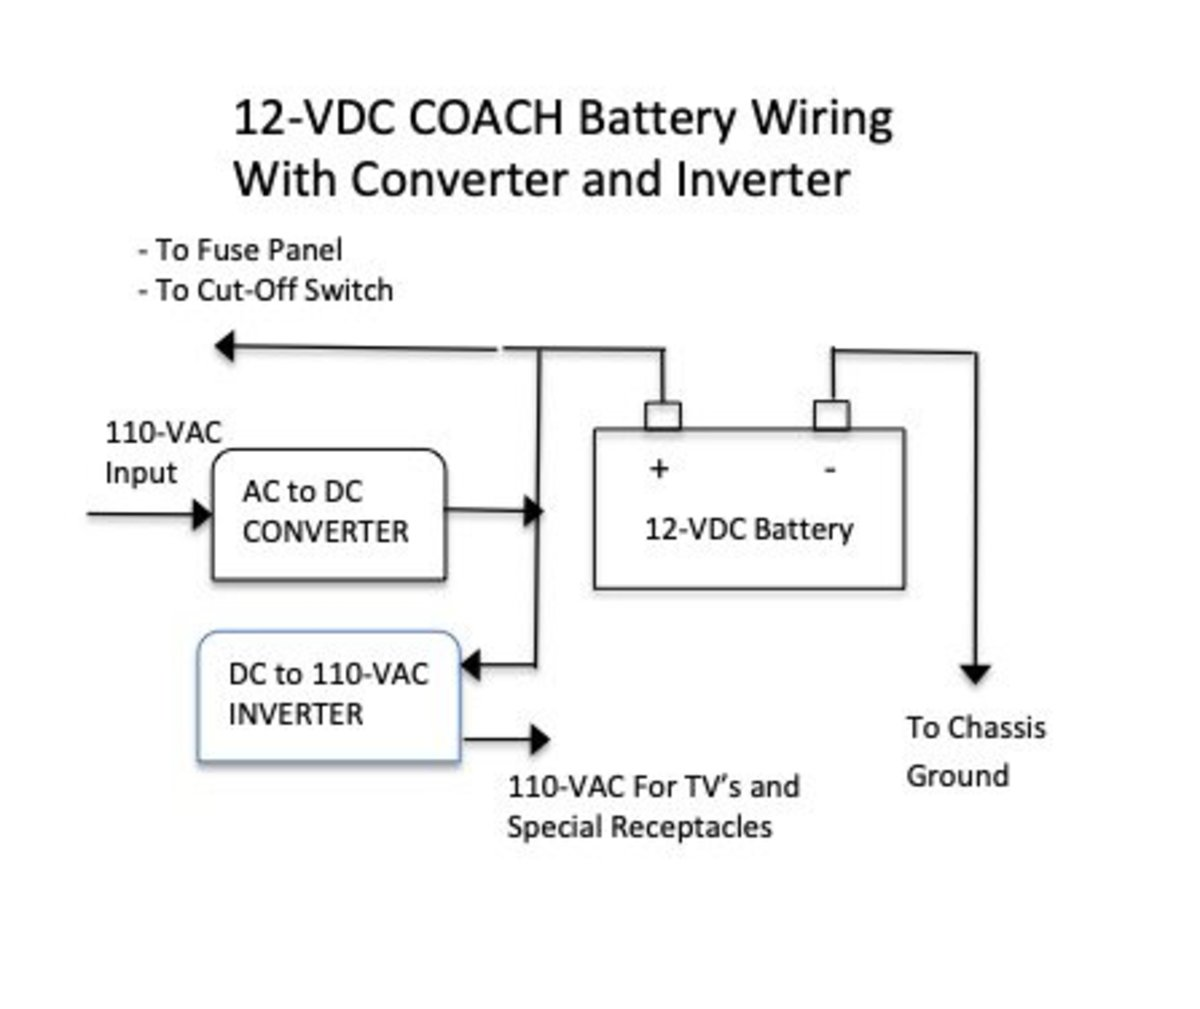 Diagram showing how the coach battery, inverter, and converter connect to each other.